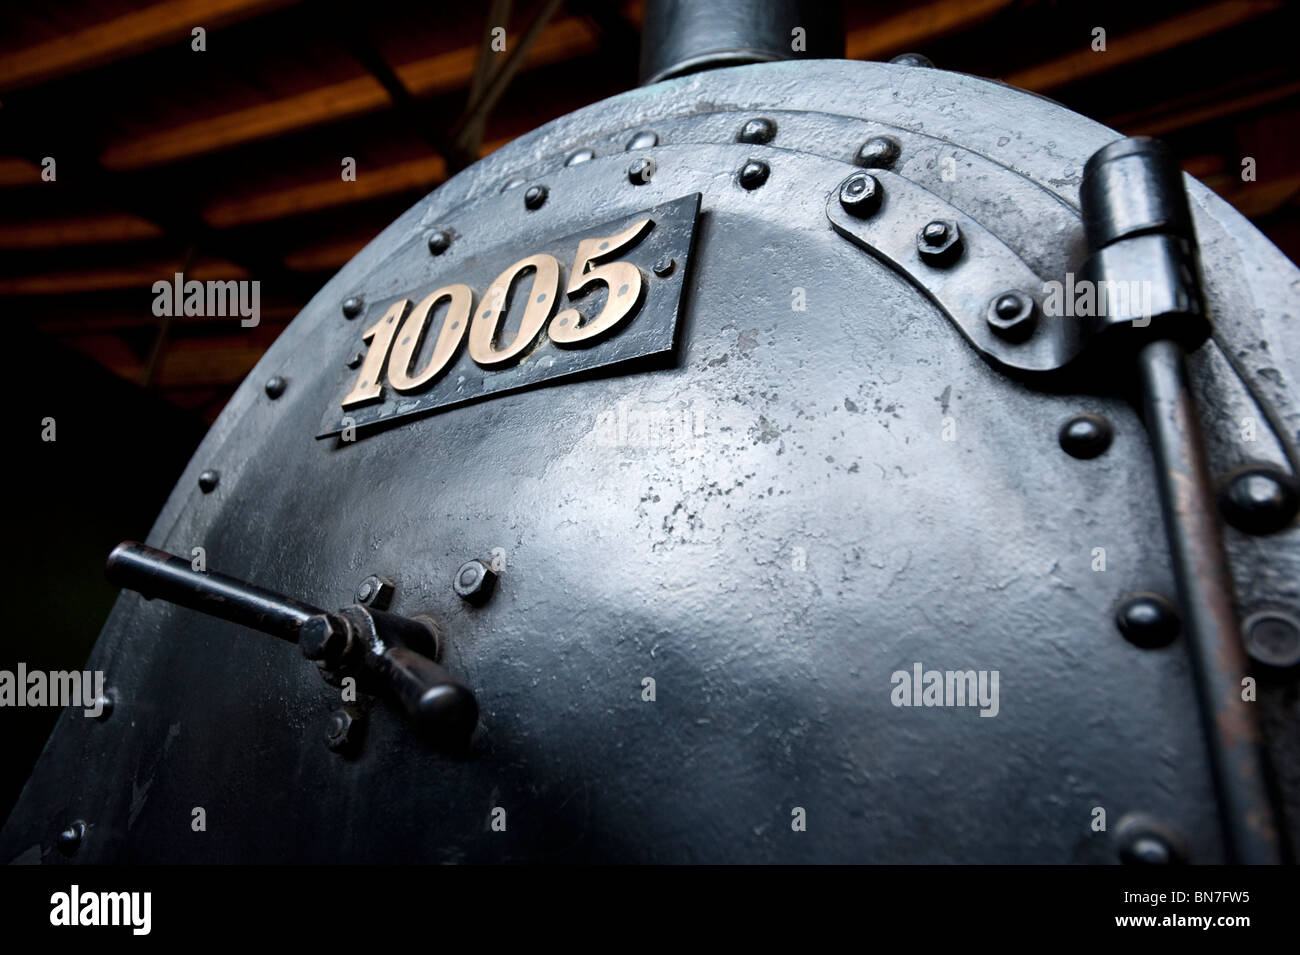 Old steam locomotives and trains on display at Deutches Technikmuseum in Berlin Germany - Stock Image